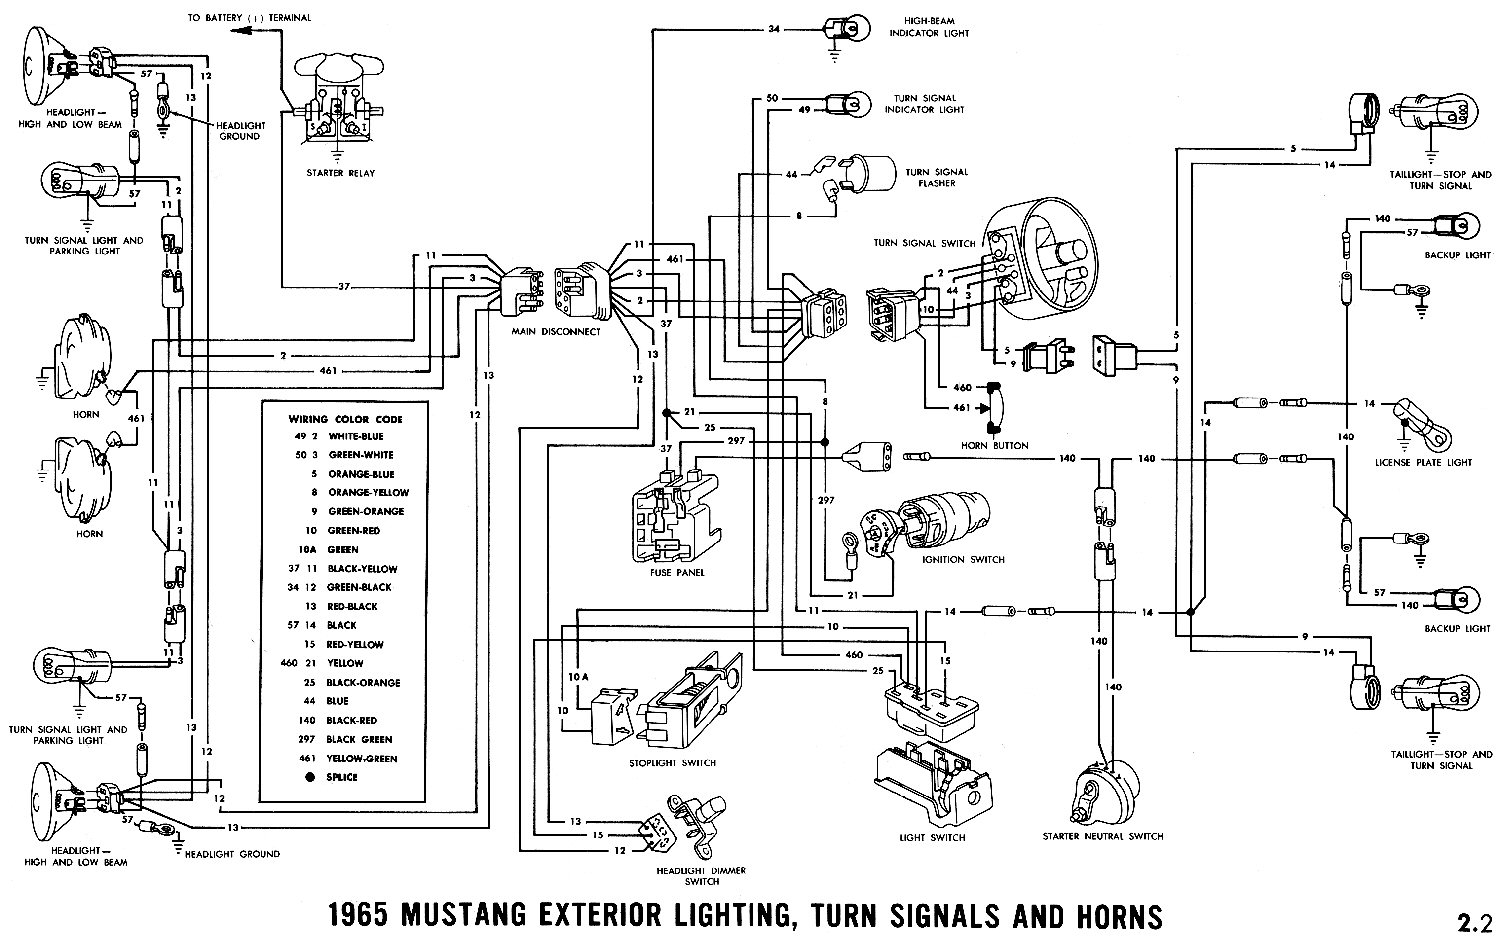 1980 Ford Mustang Wiring - Wiring Diagrams List